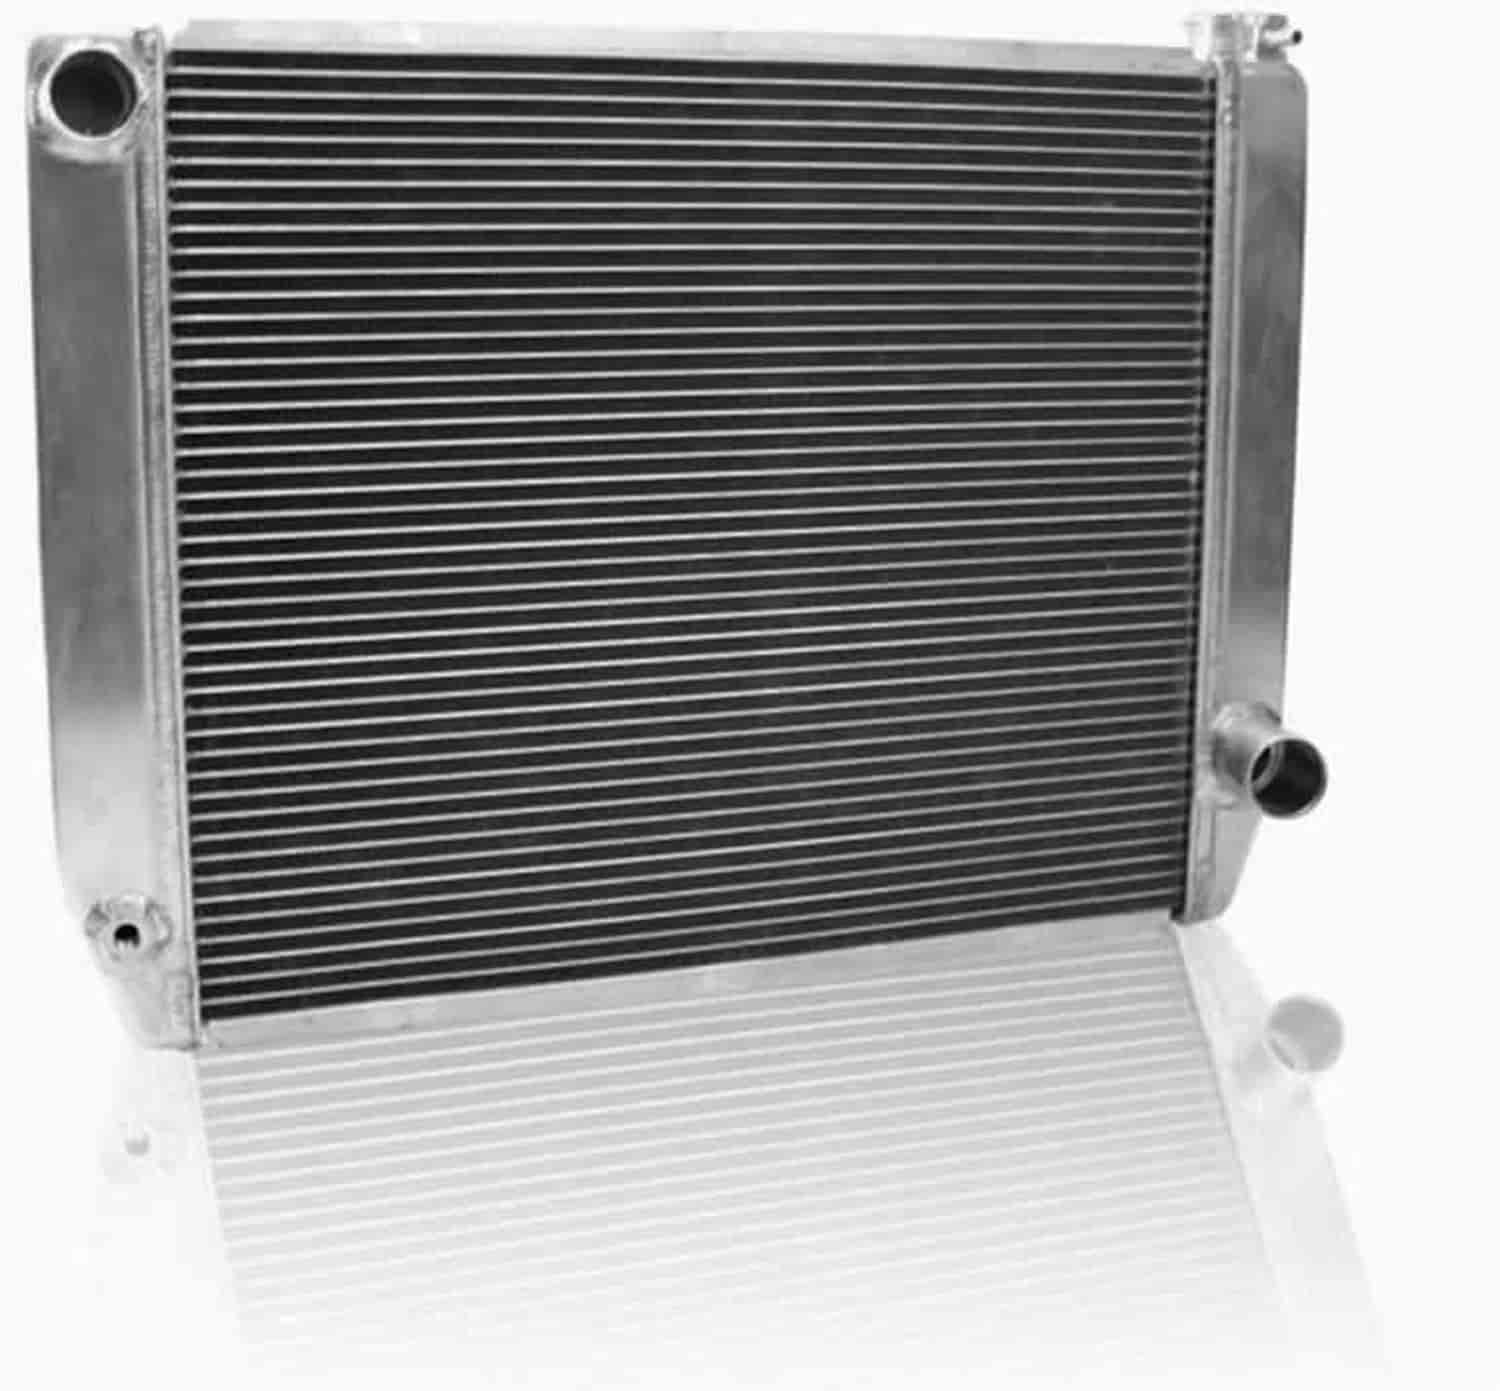 Griffin Radiators 1-55222-XS